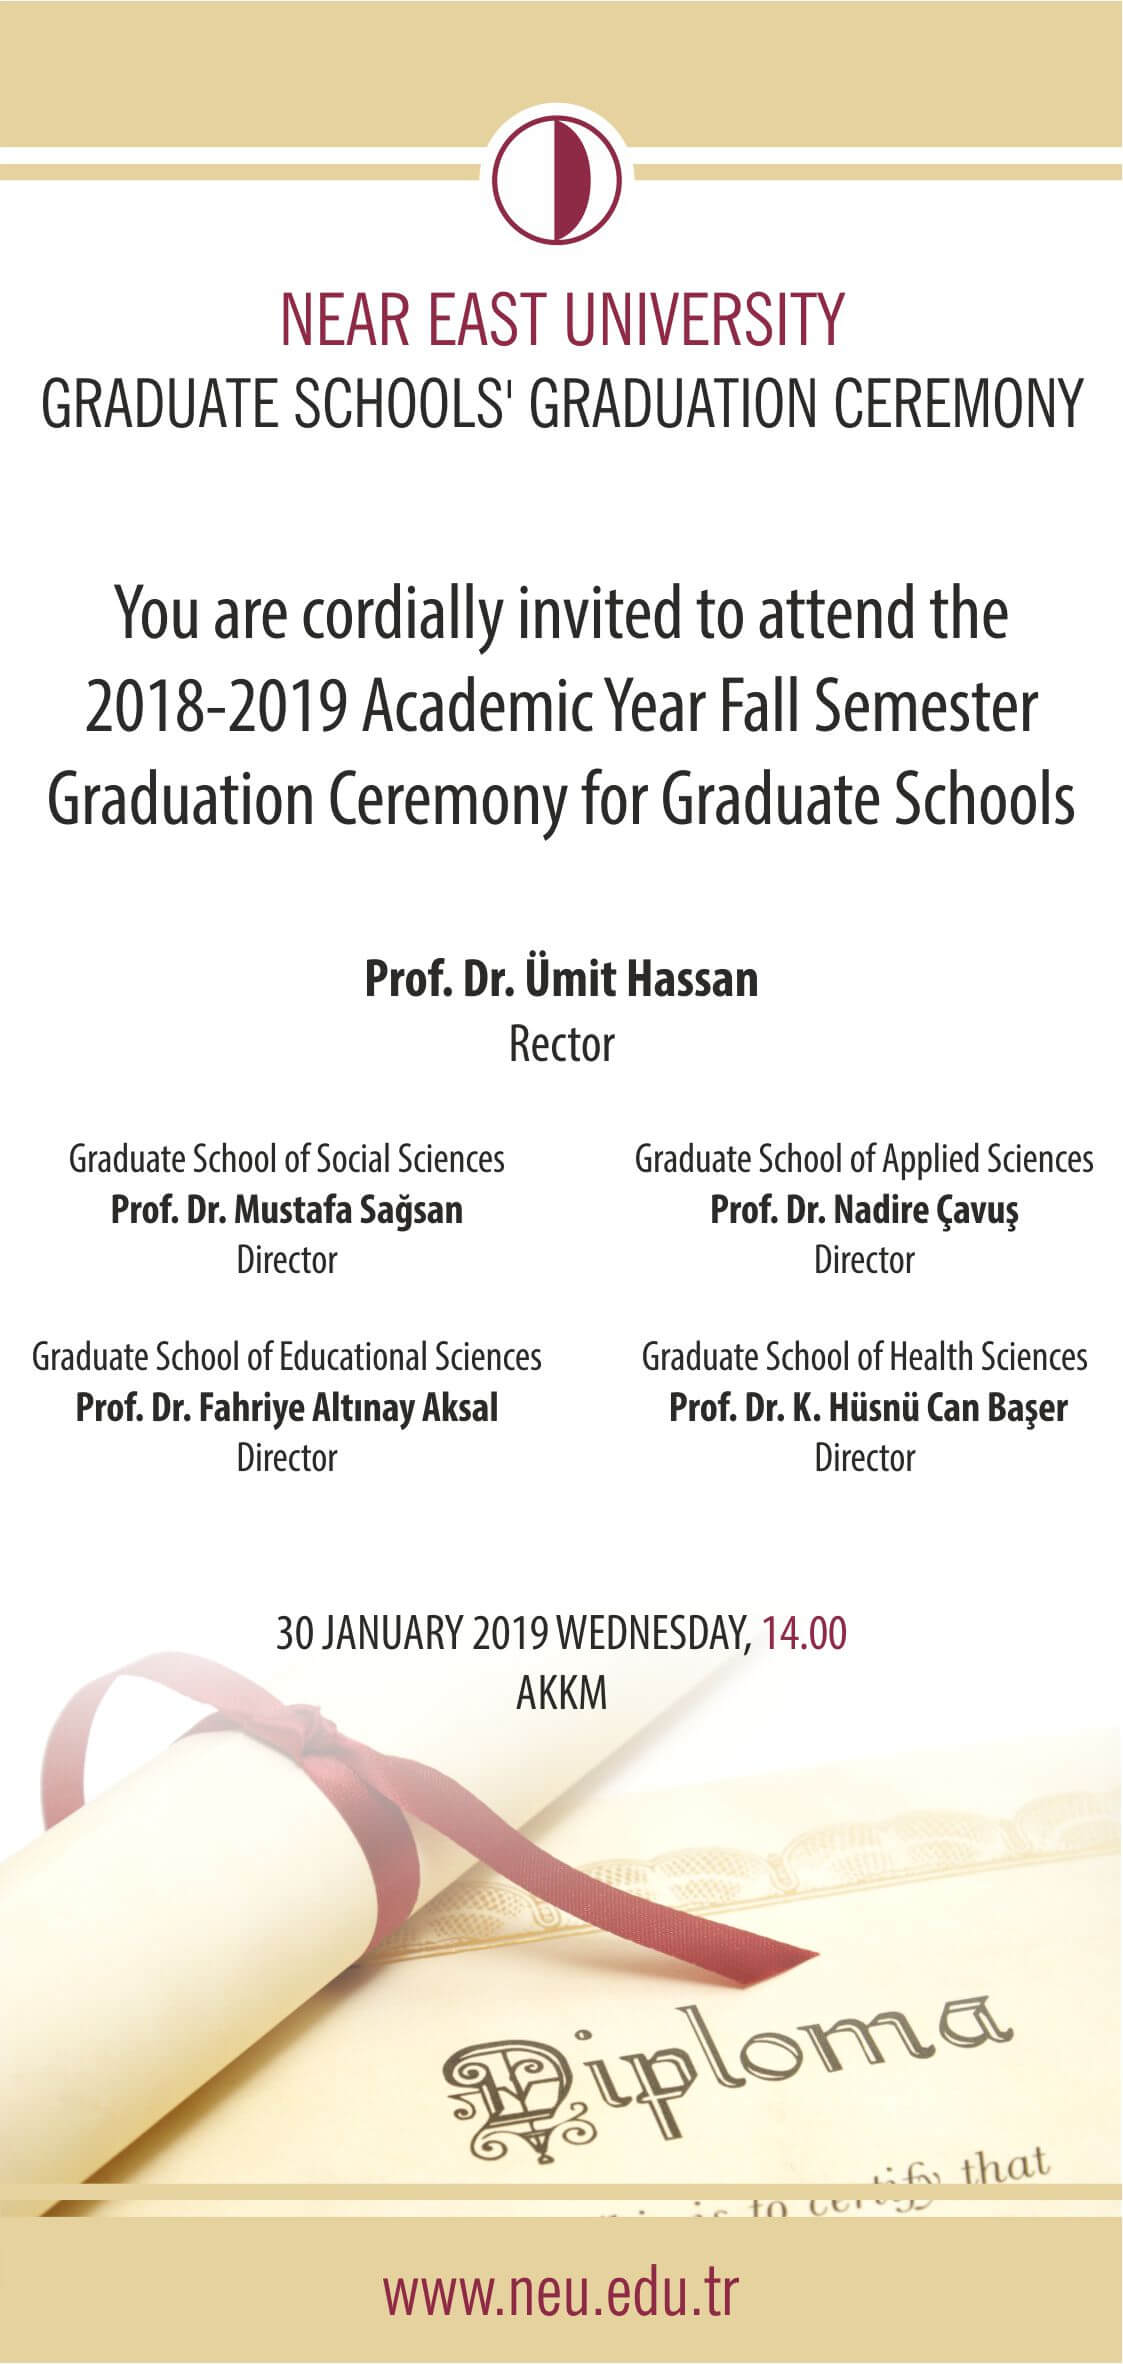 2018-2019 Academic Year Fall Semester Graduation Ceremony for Graduate Schools